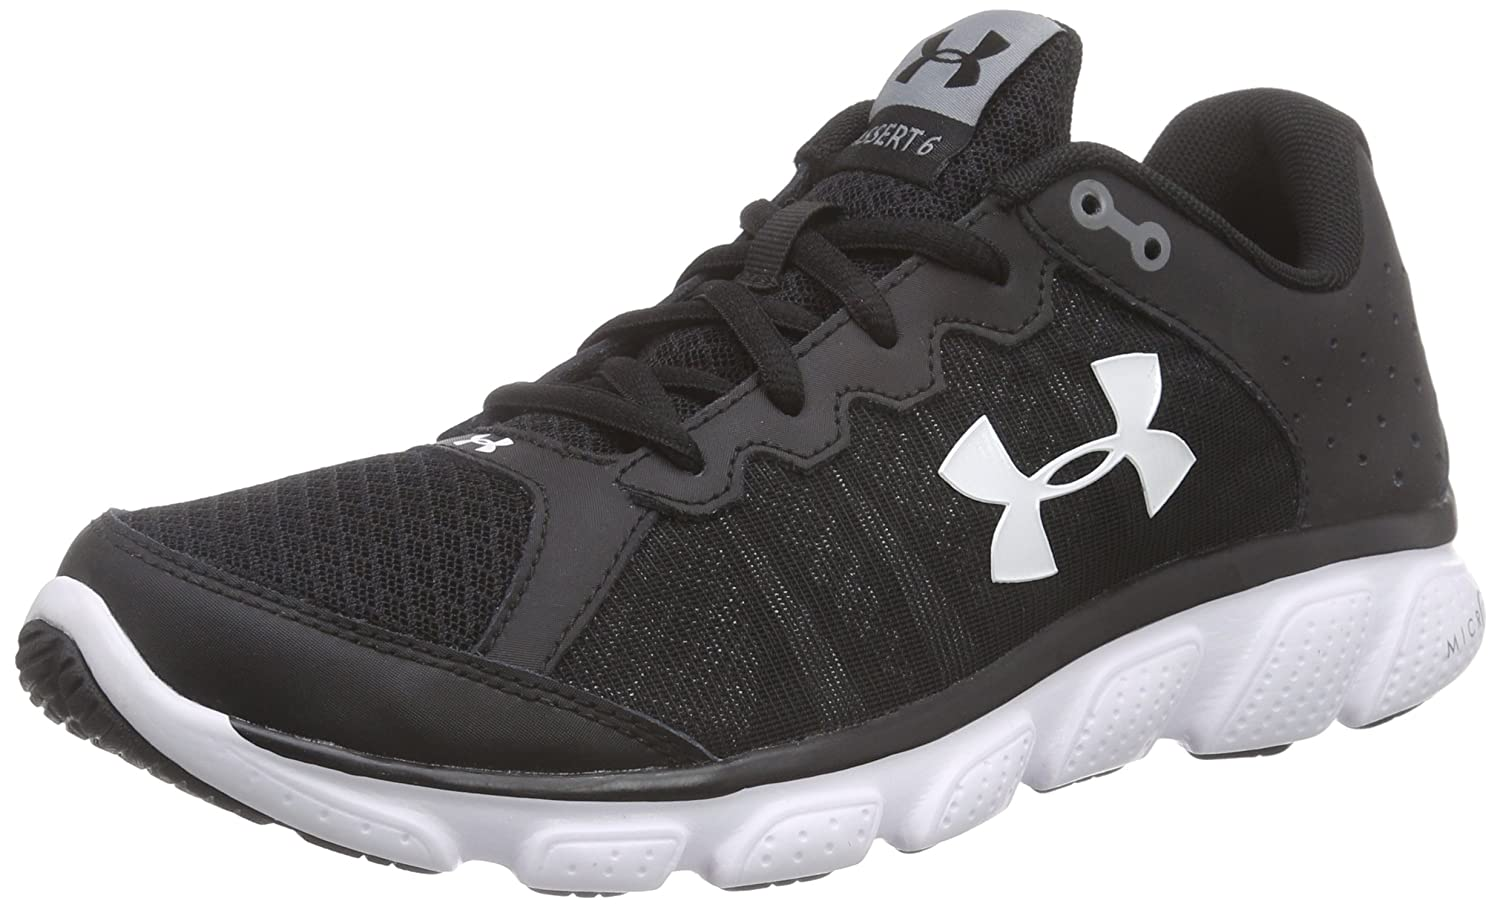 Under Armour Joggesko På Salg mGjEk3xHc